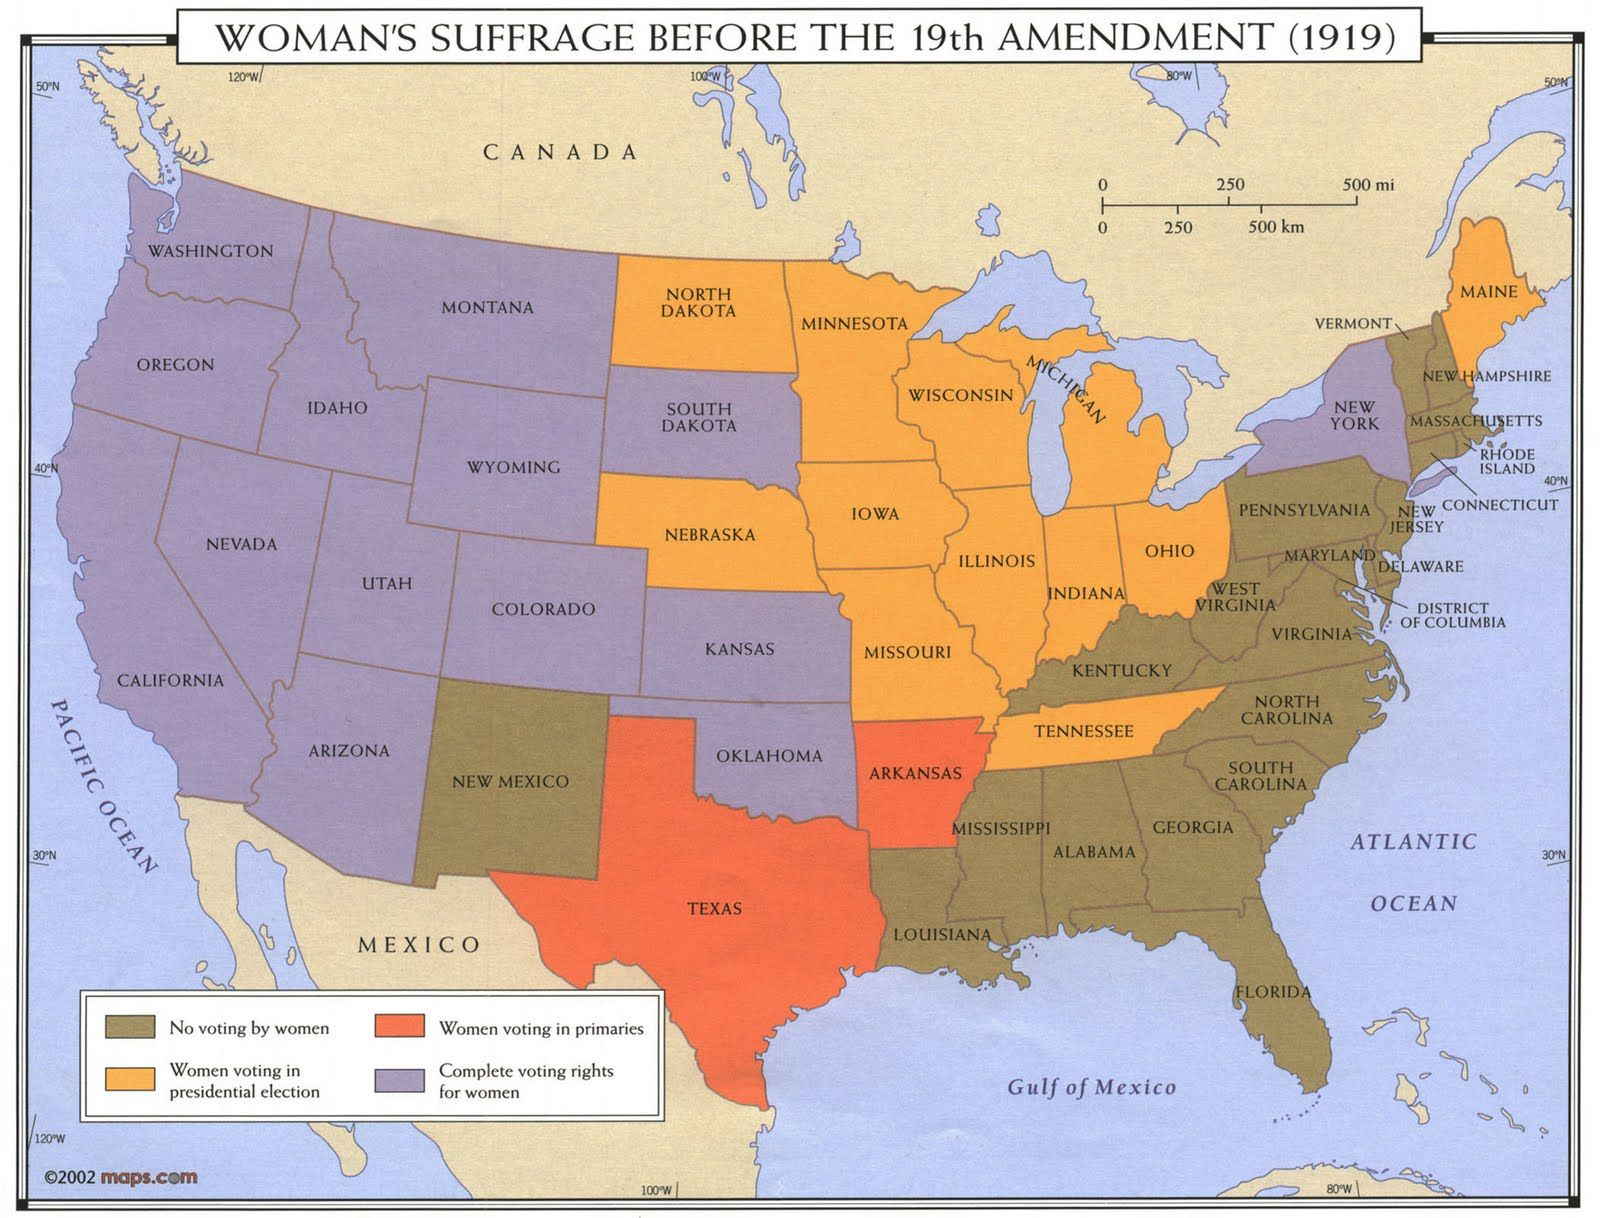 best images about suffragette movement universal gis research and map collection women s suffrage